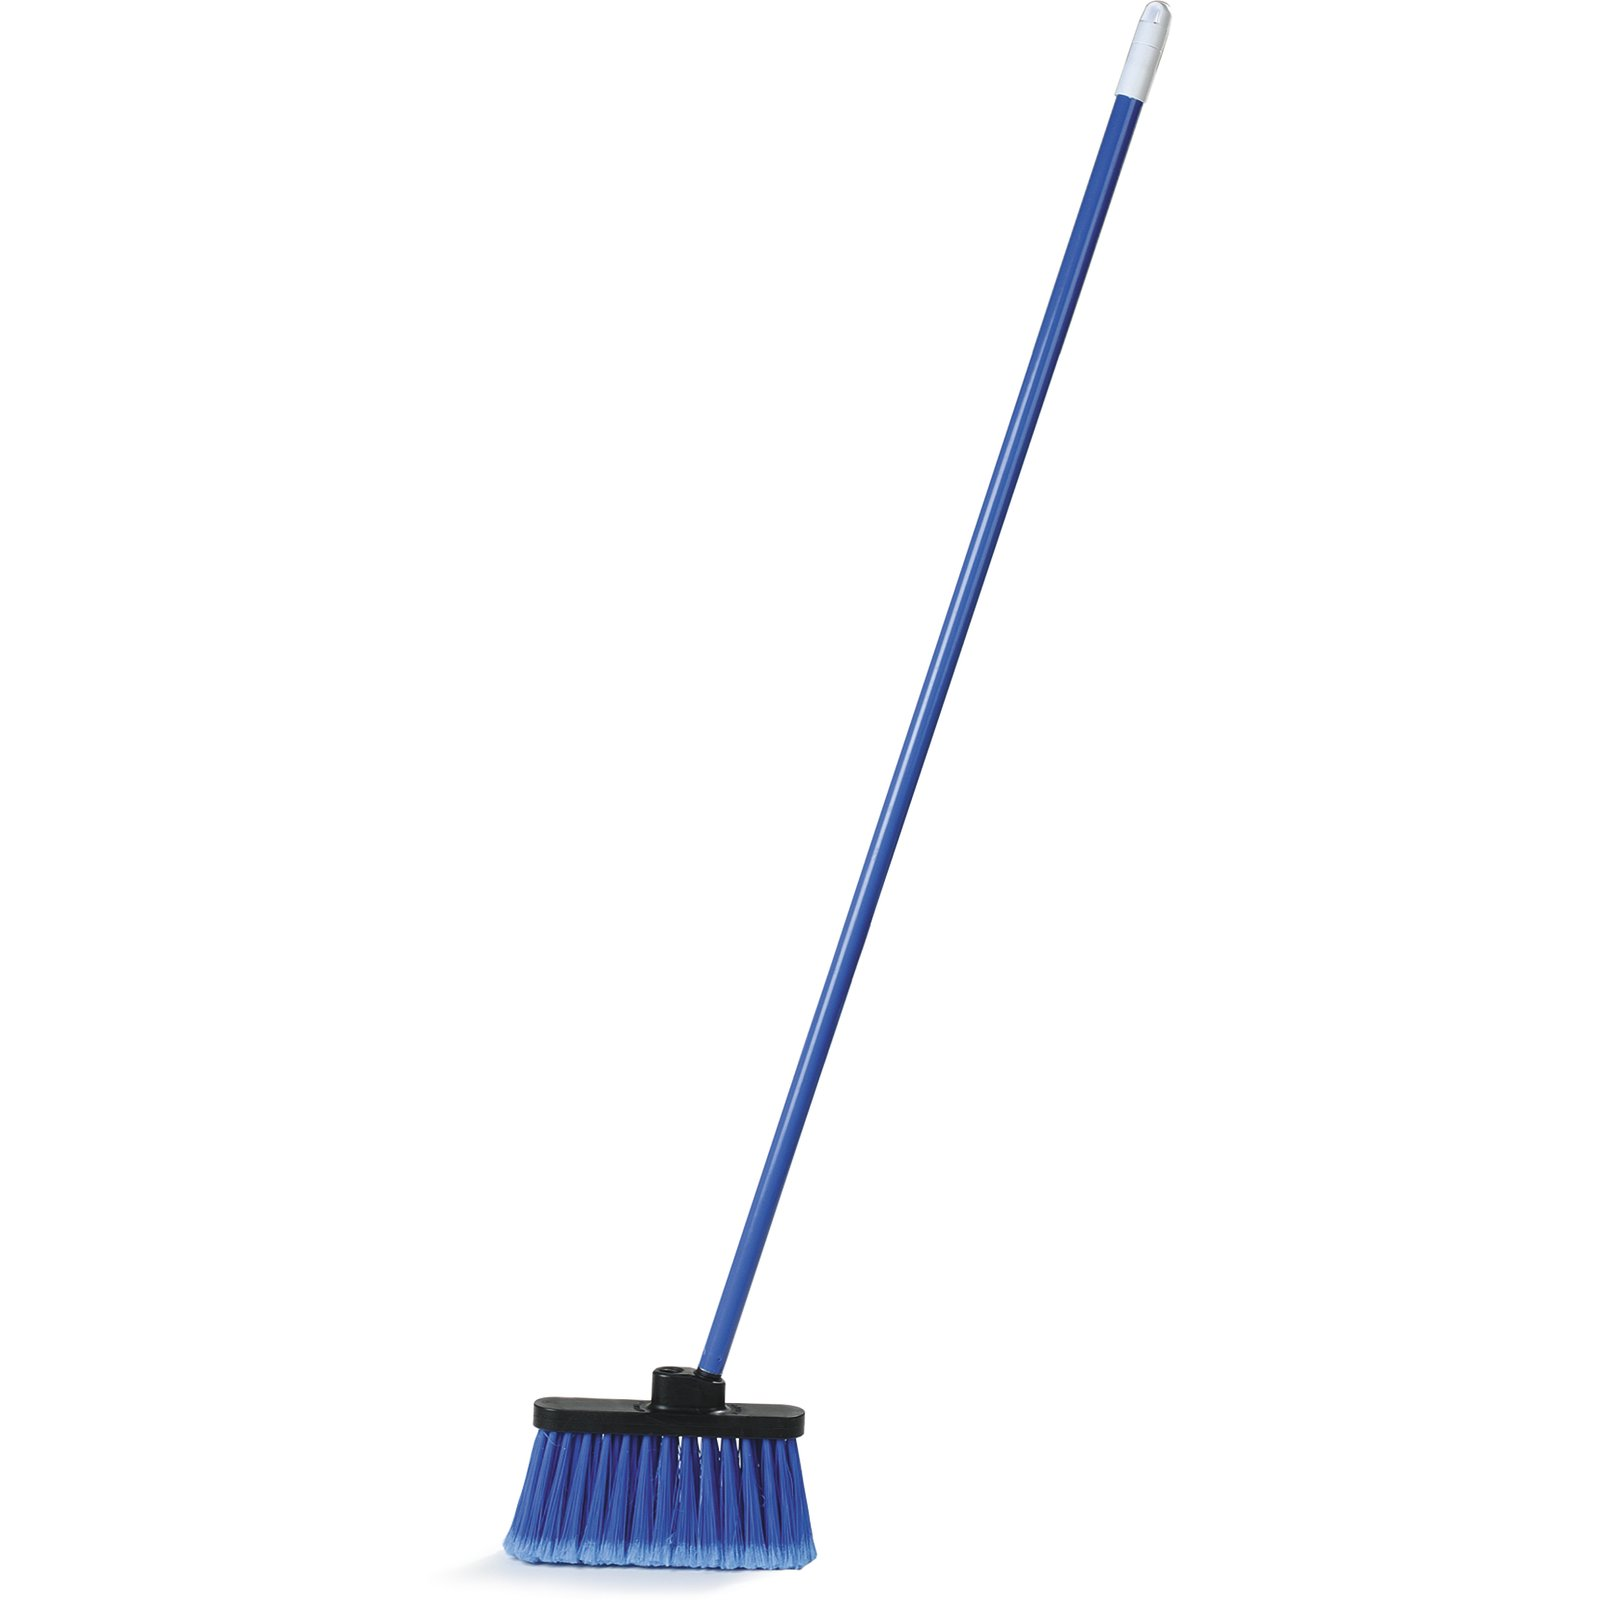 "BROOM LOBBY 4"" BRISTLE BLUE WITH 48"" HANDLE"